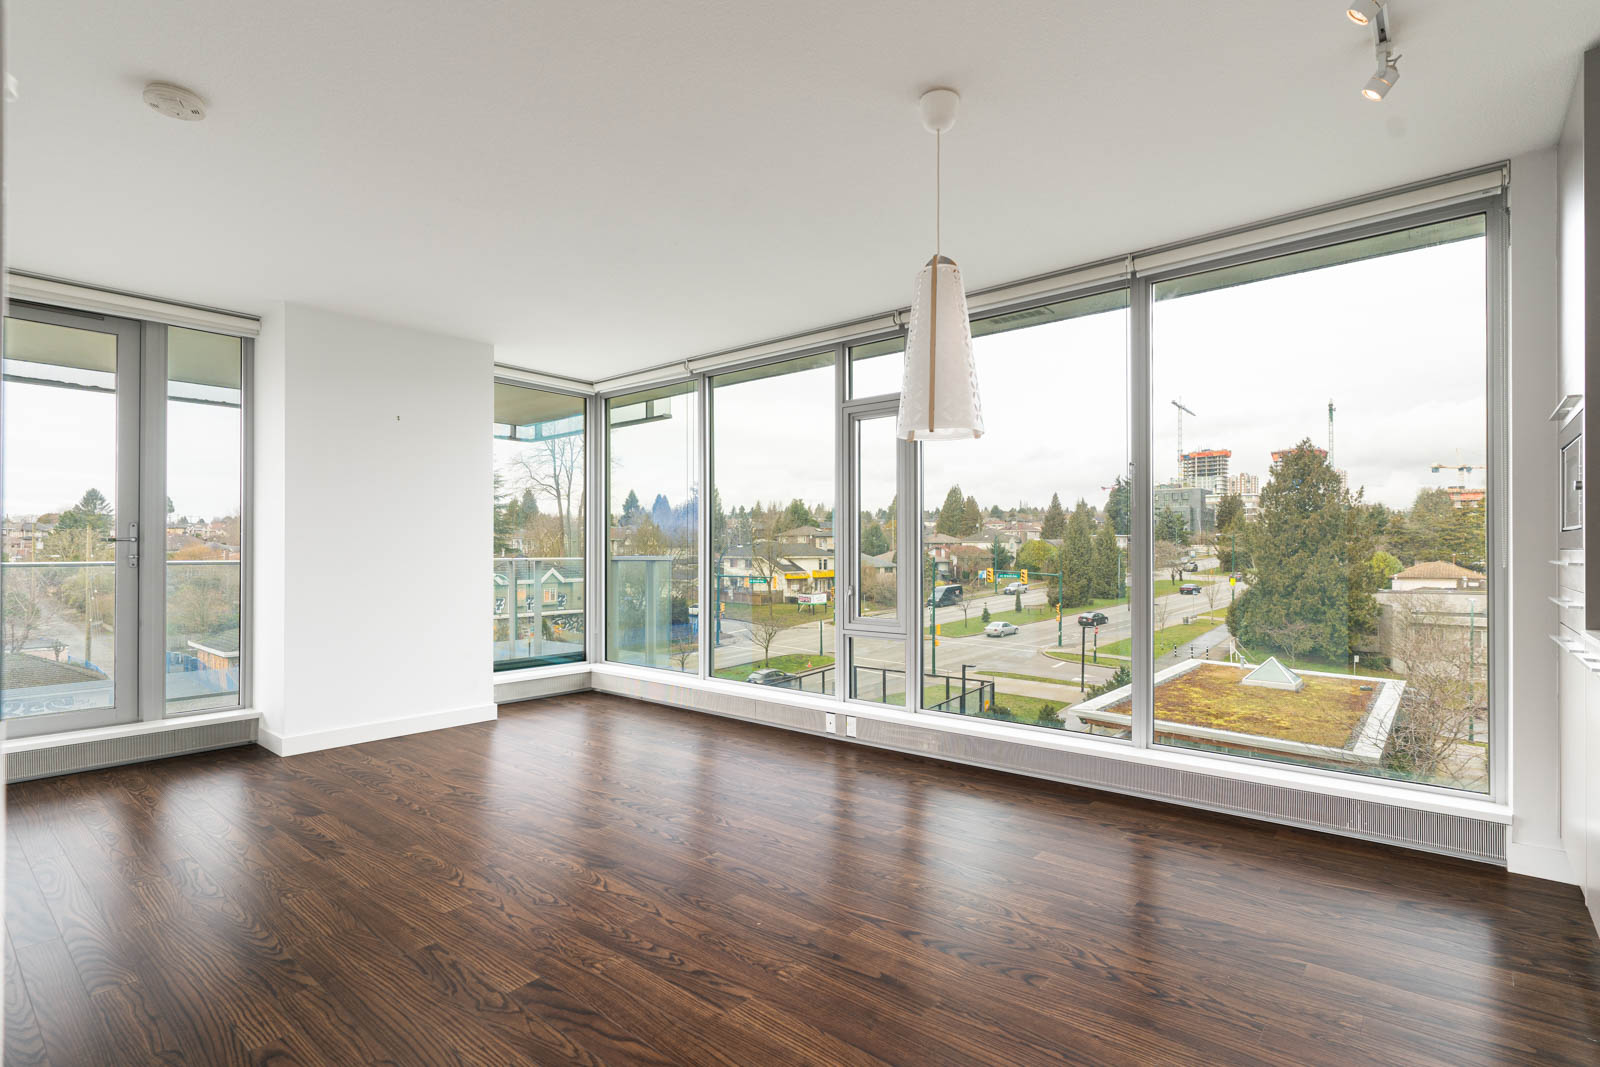 living room with laminate floors in rental house in the Marine Drive neighbourhood of Vancouver